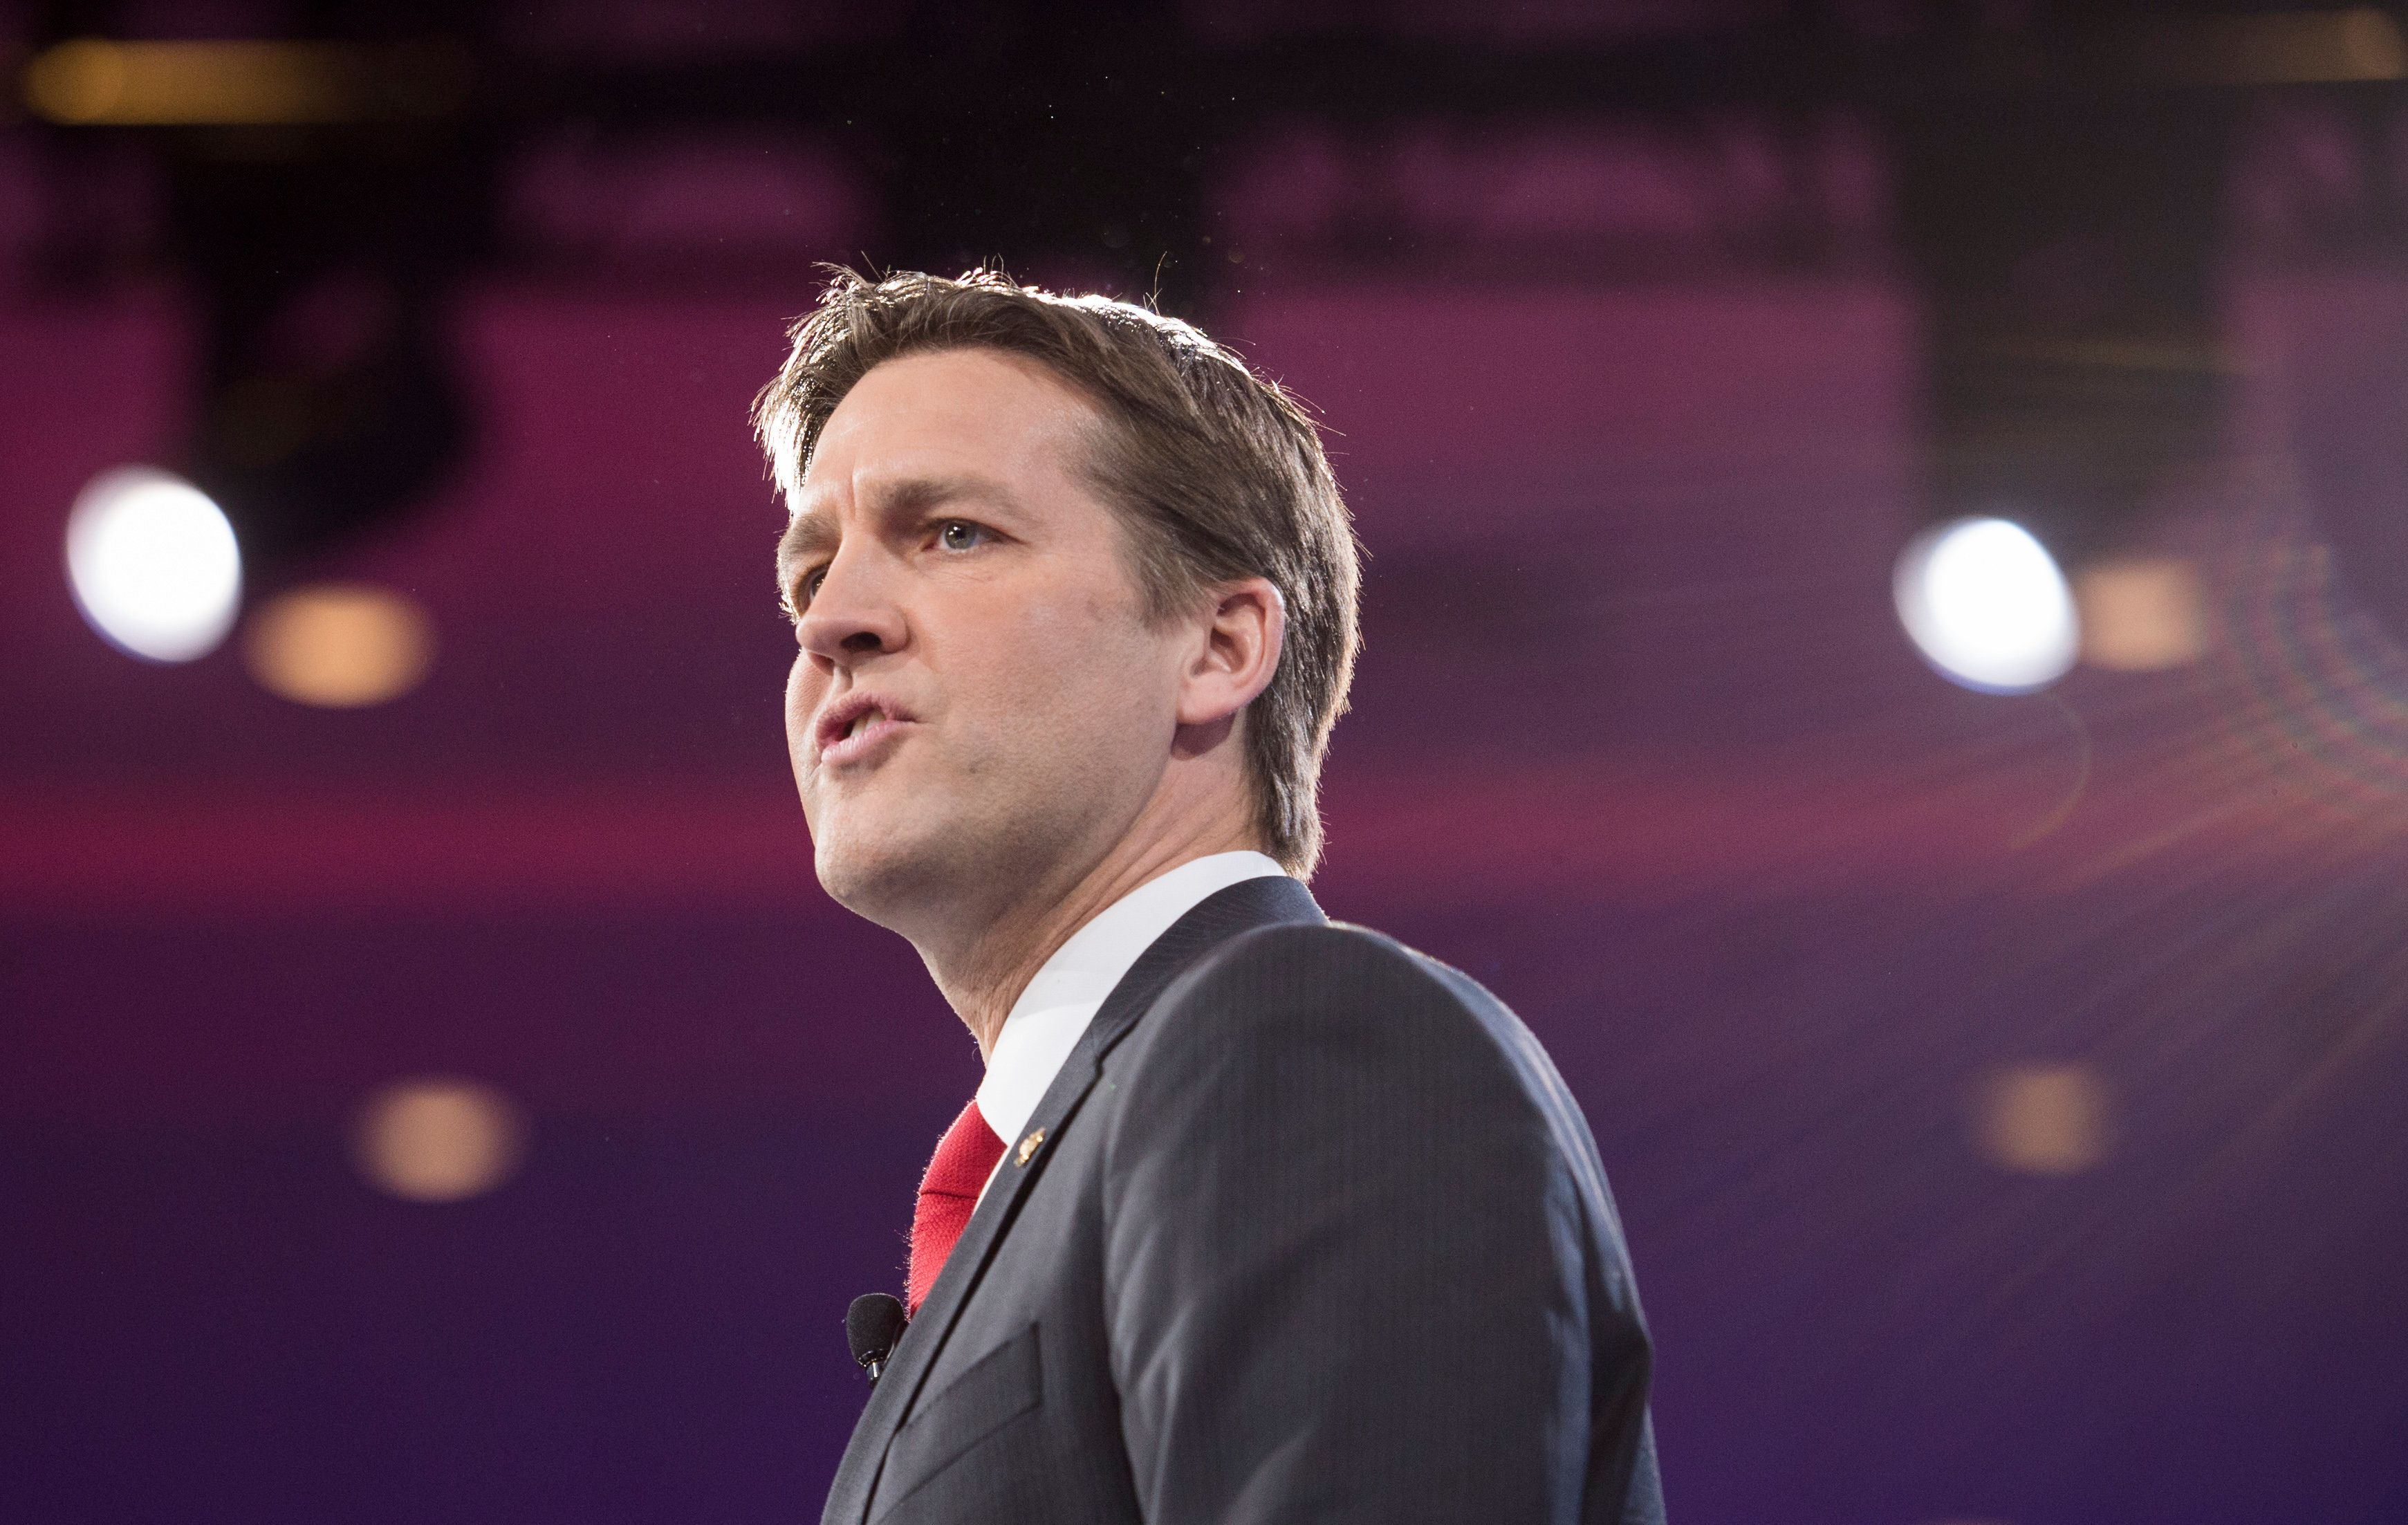 UNITED STATES - MARCH 3: Sen. Ben Sasse, R-Neb., speaks at the American Conservative Union's CPAC conference at National Harbor in Oxon Hill, Md., on Thursday, March 3, 2016. (Photo By Bill Clark/CQ Roll Call)